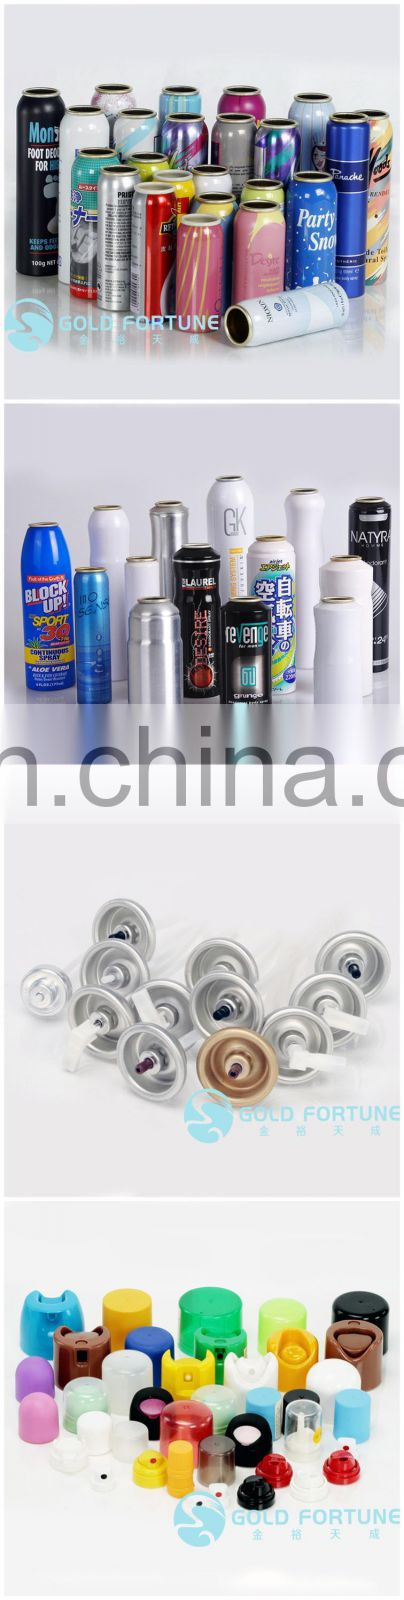 China Manufacturer Parfum Spray Bottle Aerosol Can Aluminum Bottles